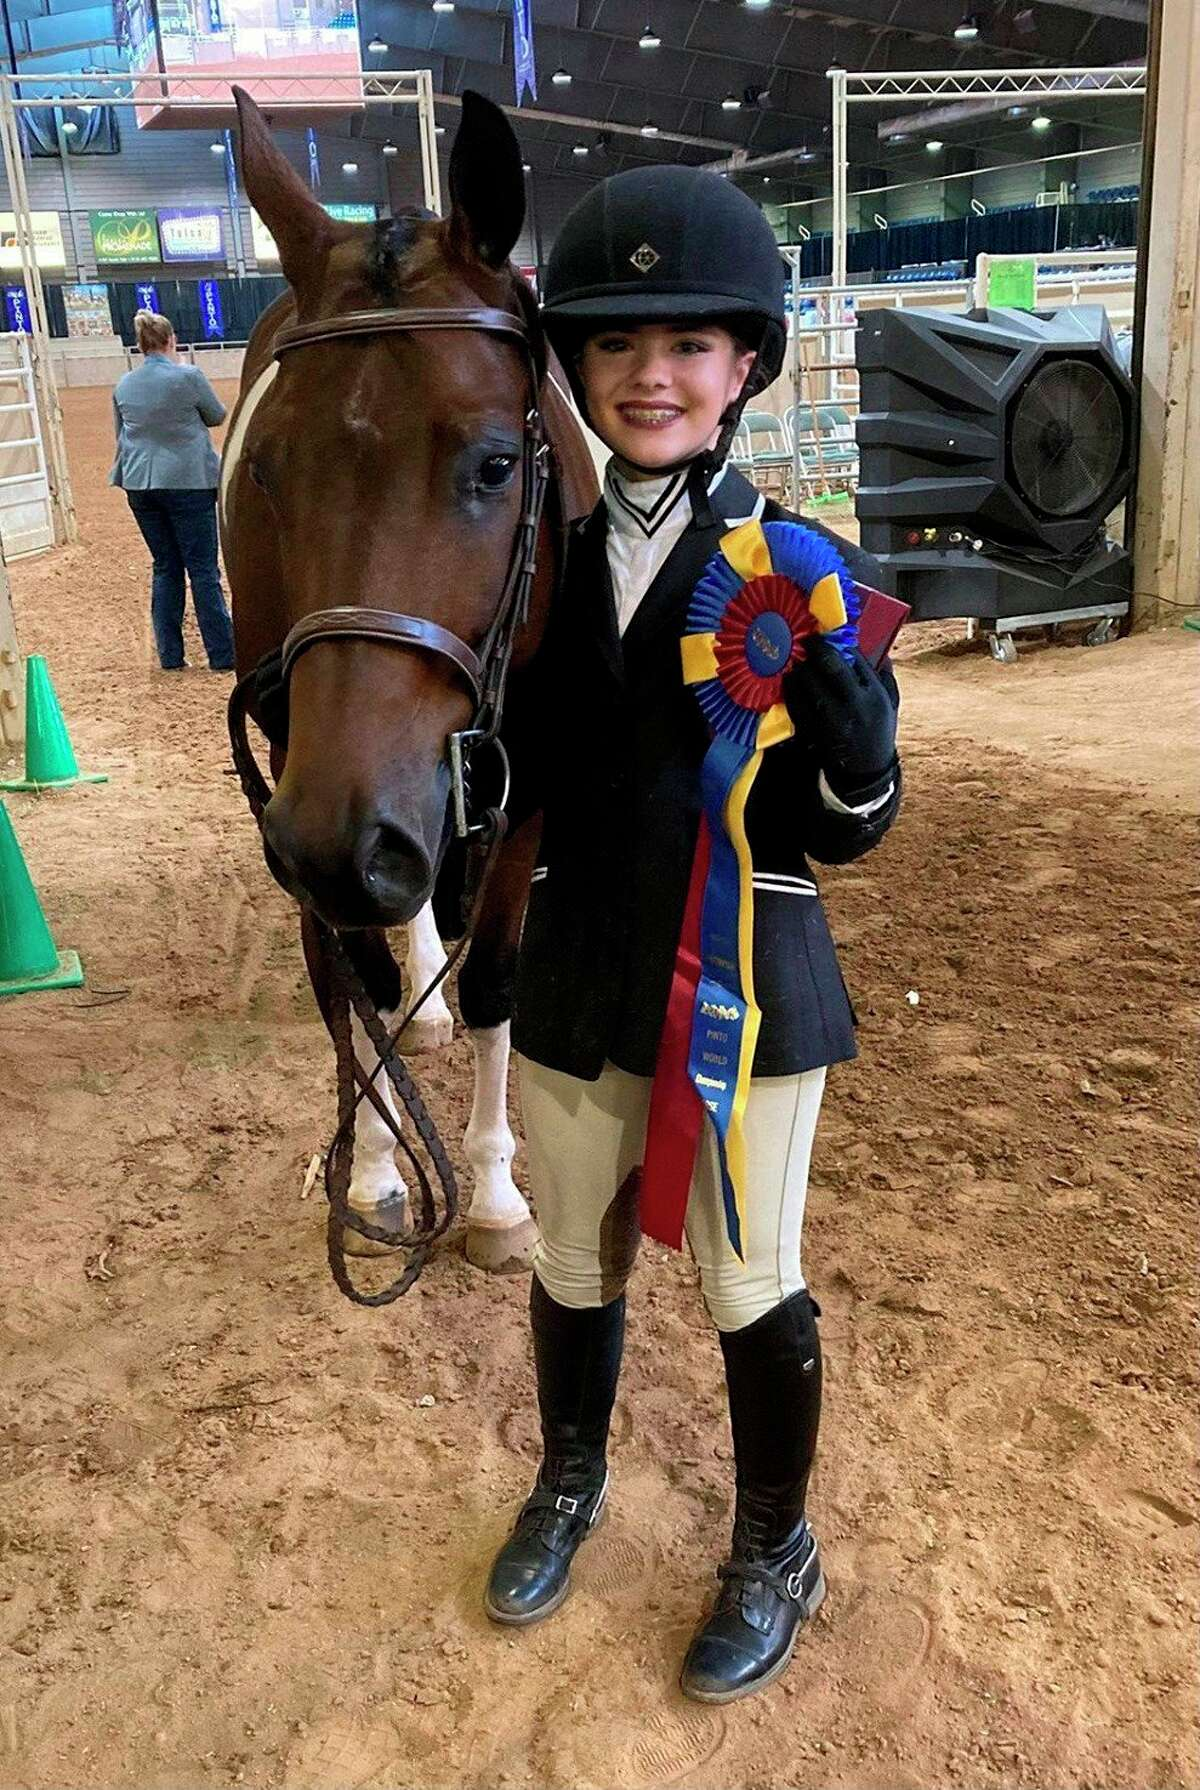 Twelve-year-old Reed City student Malley Terrynis pictured at the Pinto World Championship show in Tulsa, Oklahoma with her horse Bill Simpson. (Courtesy/Malley Terryn)